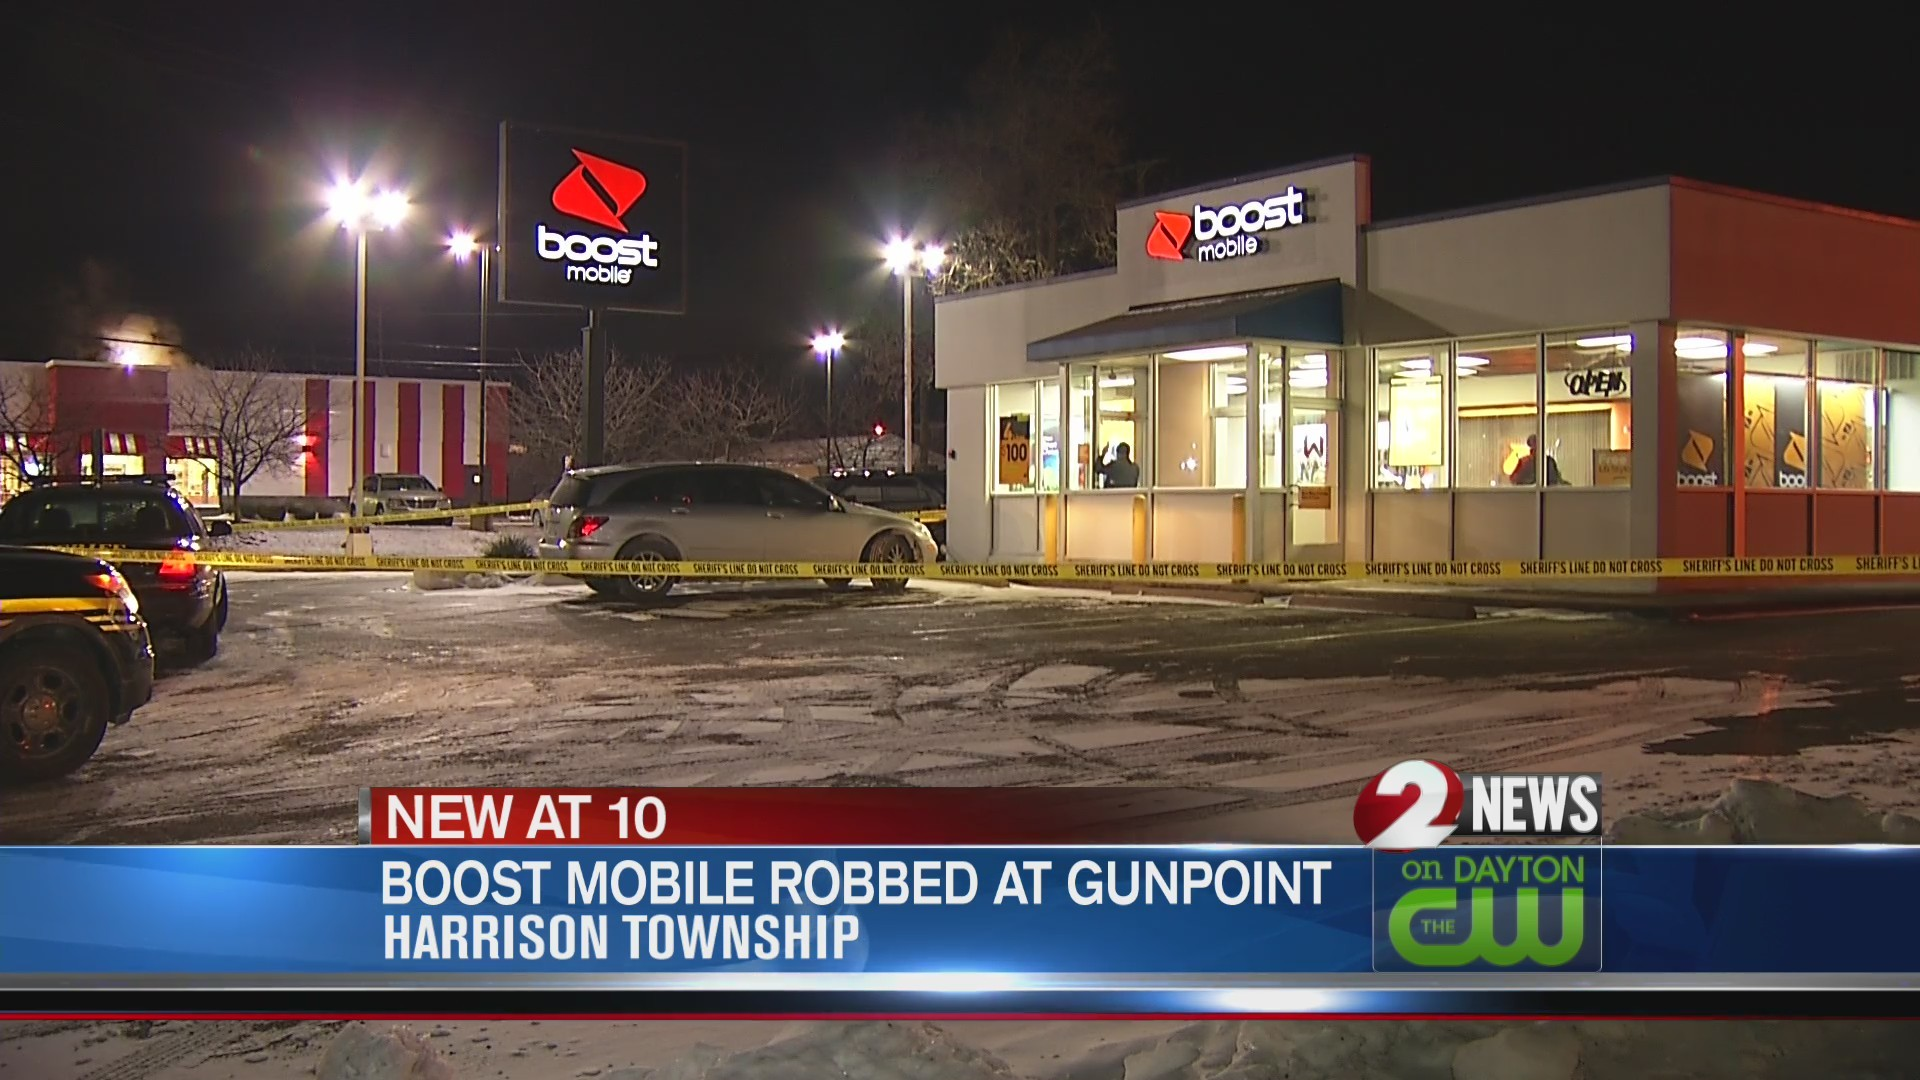 Armed robbery reported at Harrison Twp  Boost Mobile store